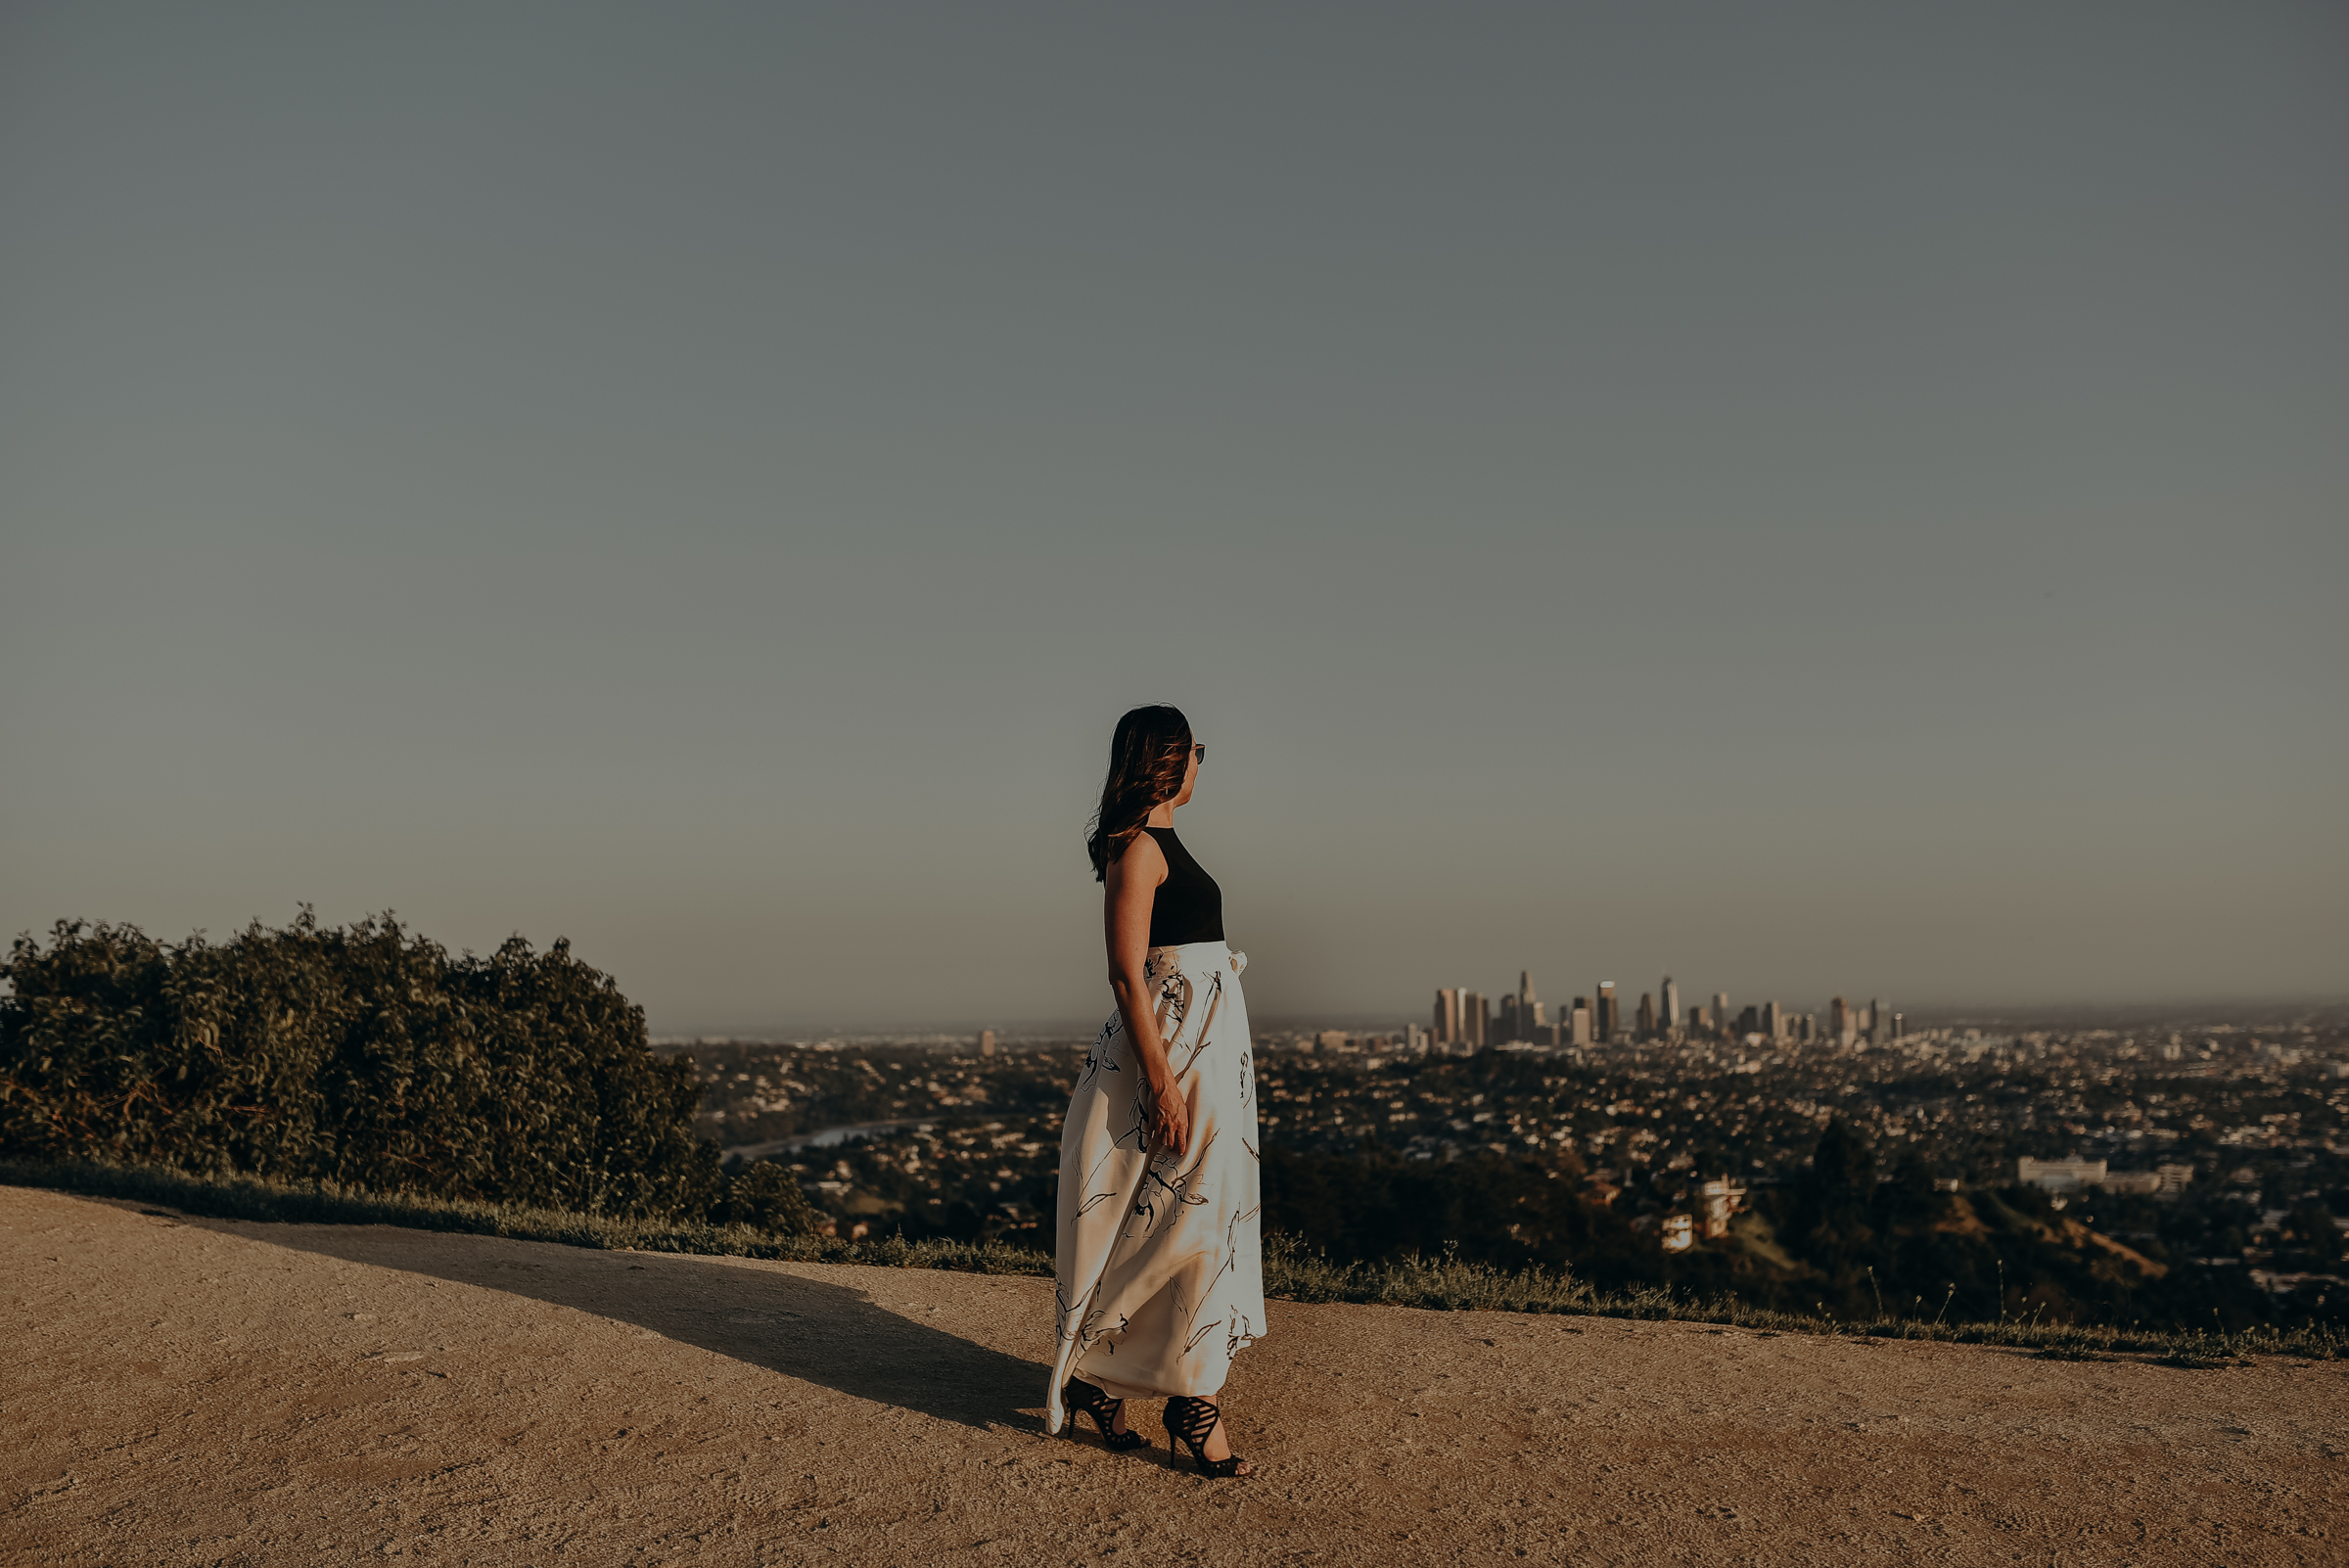 Los Angeles Wedding Photographers - Griffith Park Engagement - IsaiahAndTaylor.com-030.jpg